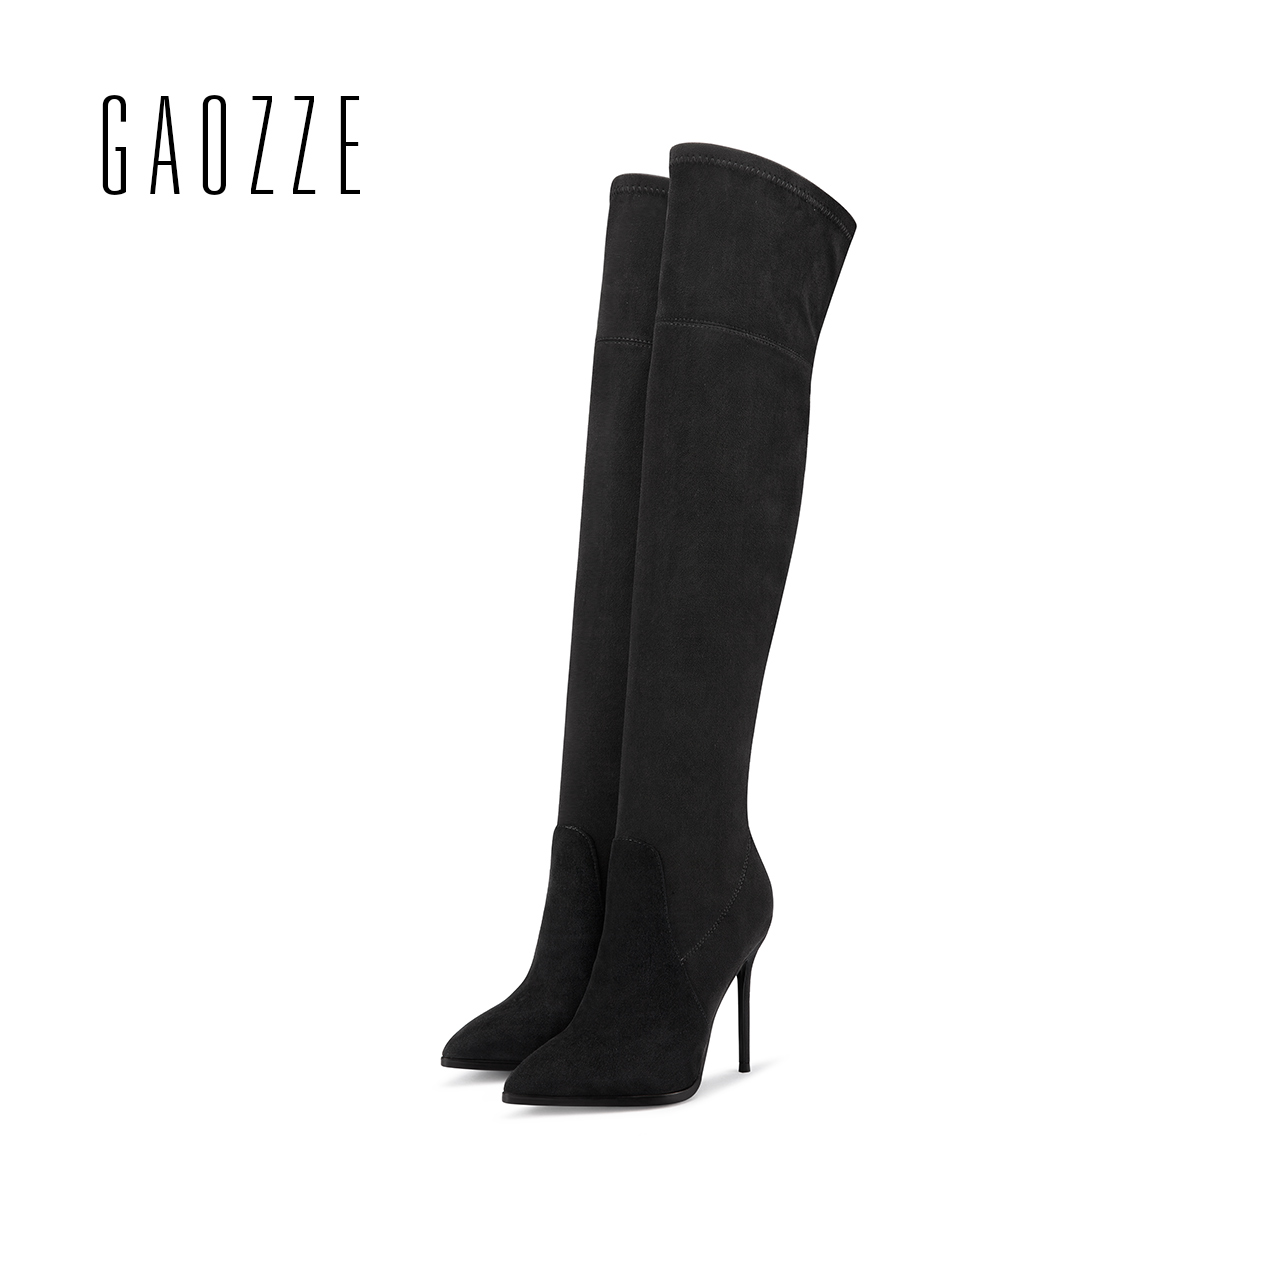 GAOZZE women sexy high-heeled over knee boots 2017 autumn new female fashion stretch fabric socks boots black women casual boots spring 2016 new arrive women fashion boots solid casual boots round waterproof high heeled women boots stretch stovepipe boots